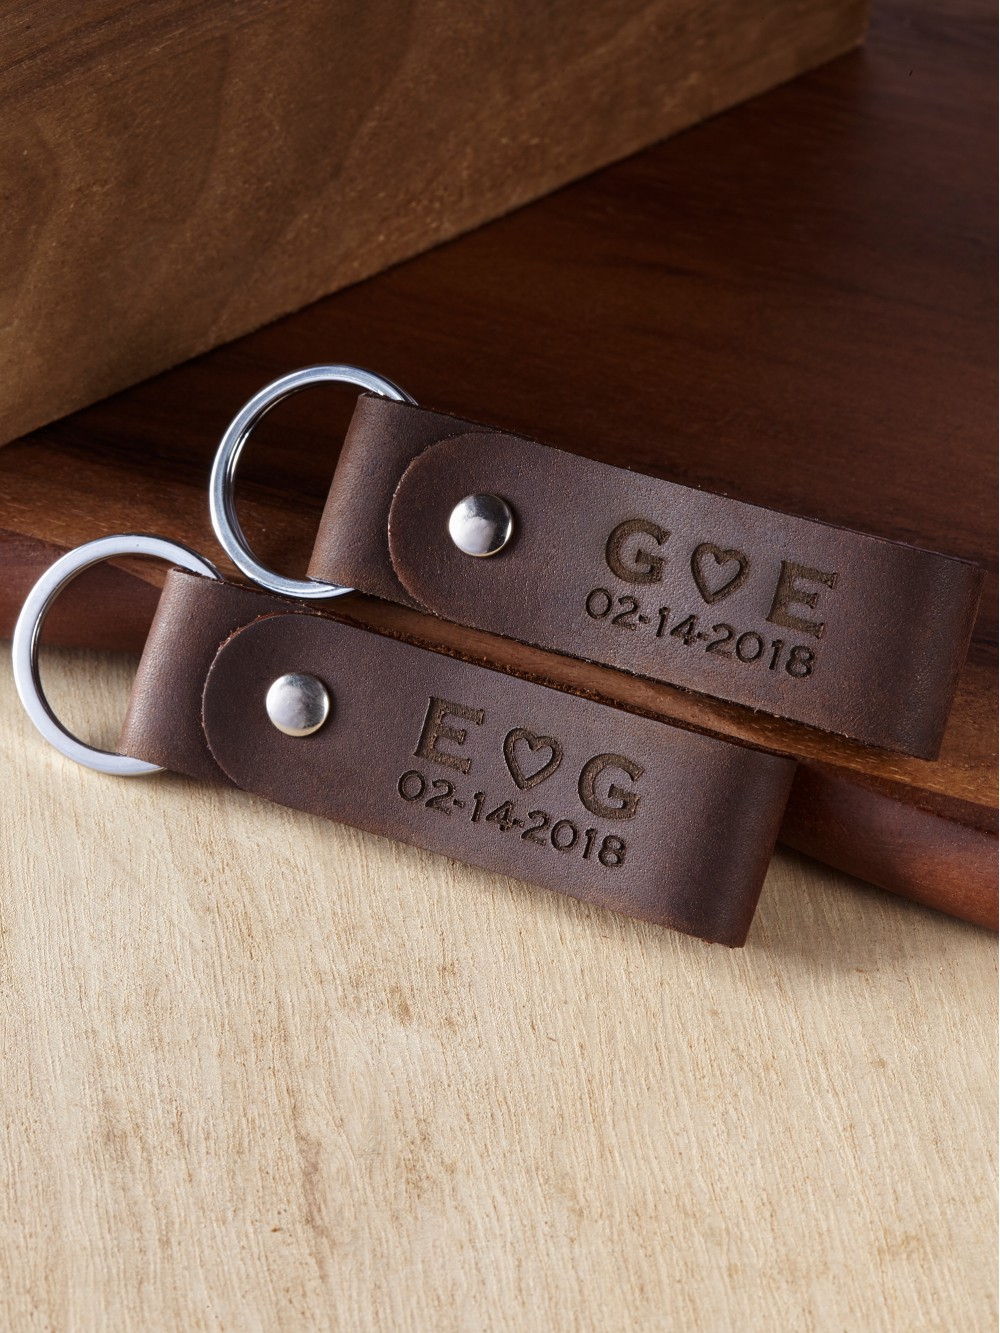 Personalized Keychains for Couples - You're My Person